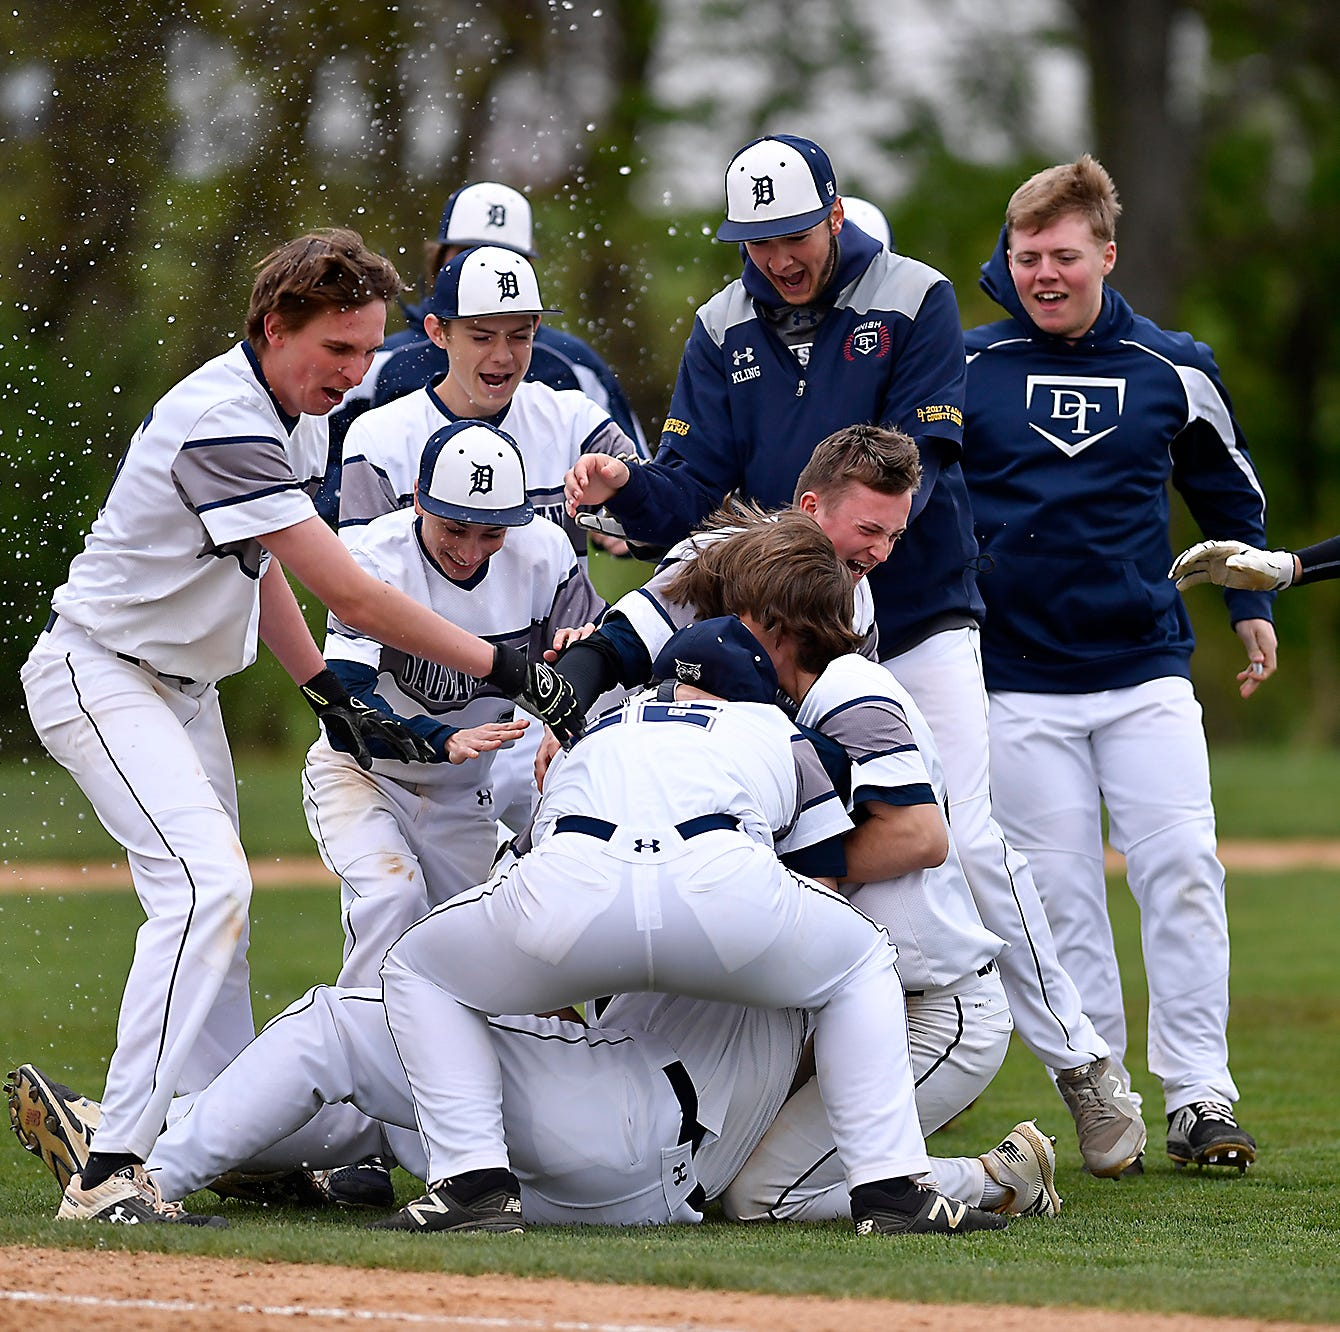 Dallastown vs. West York, Gettysburg vs. Biglerville in Y-A baseball playoff openers